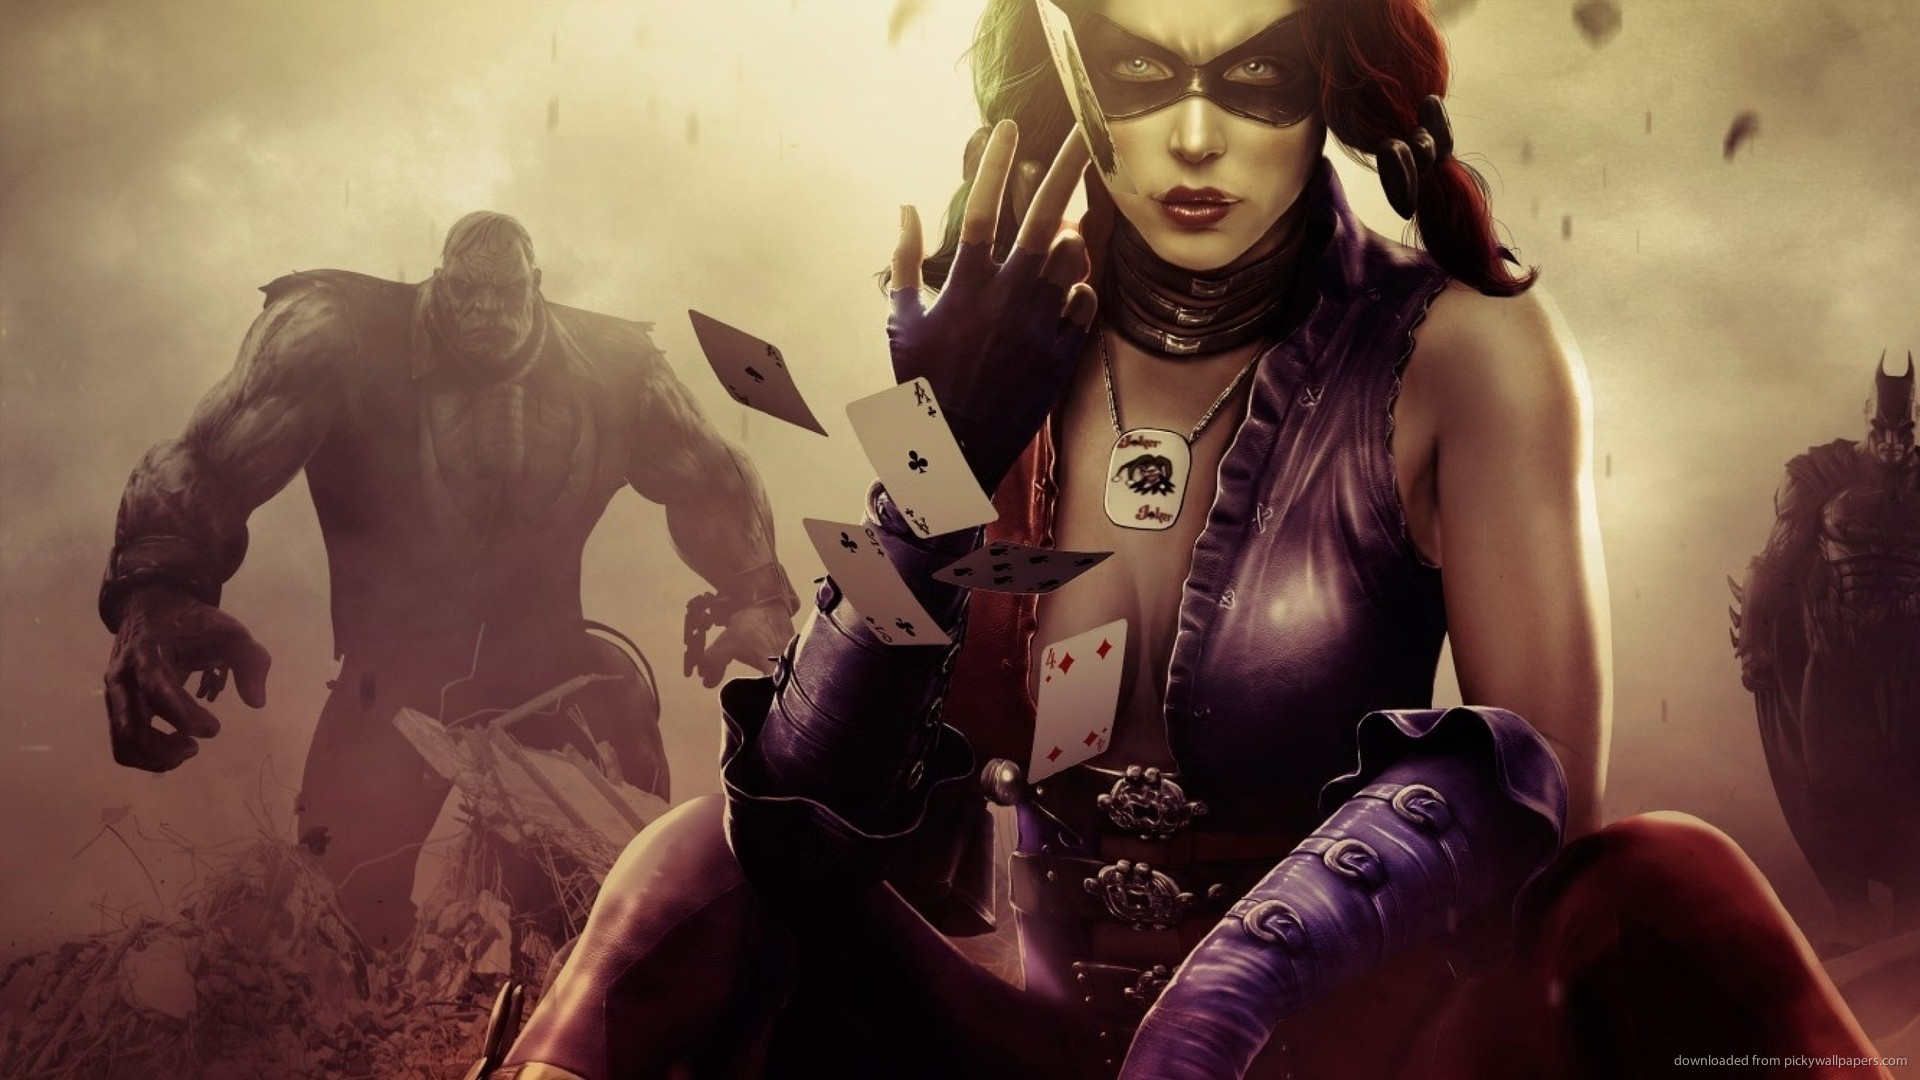 Harley Quinn Throwing Cards picture